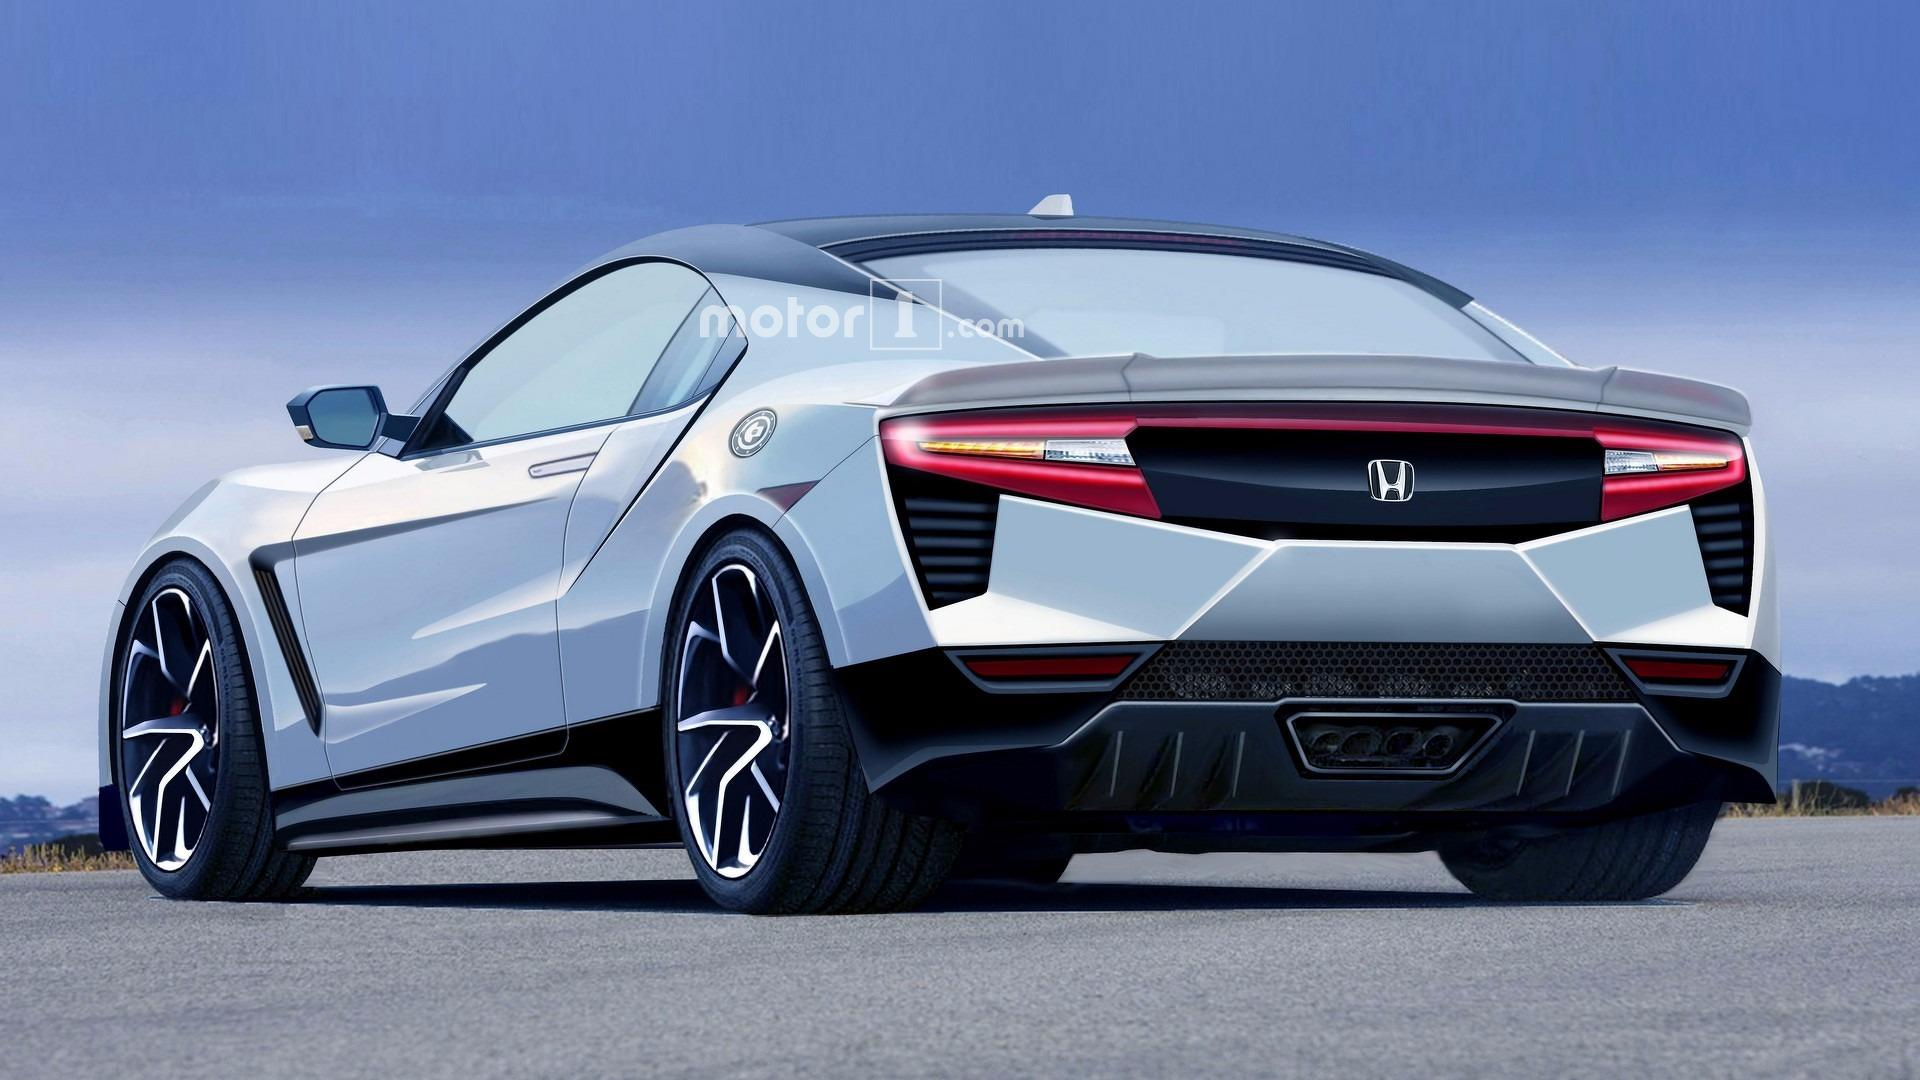 New Honda S2000 >> 2019 Honda S2000 Render Makes Us Wish It Were Real